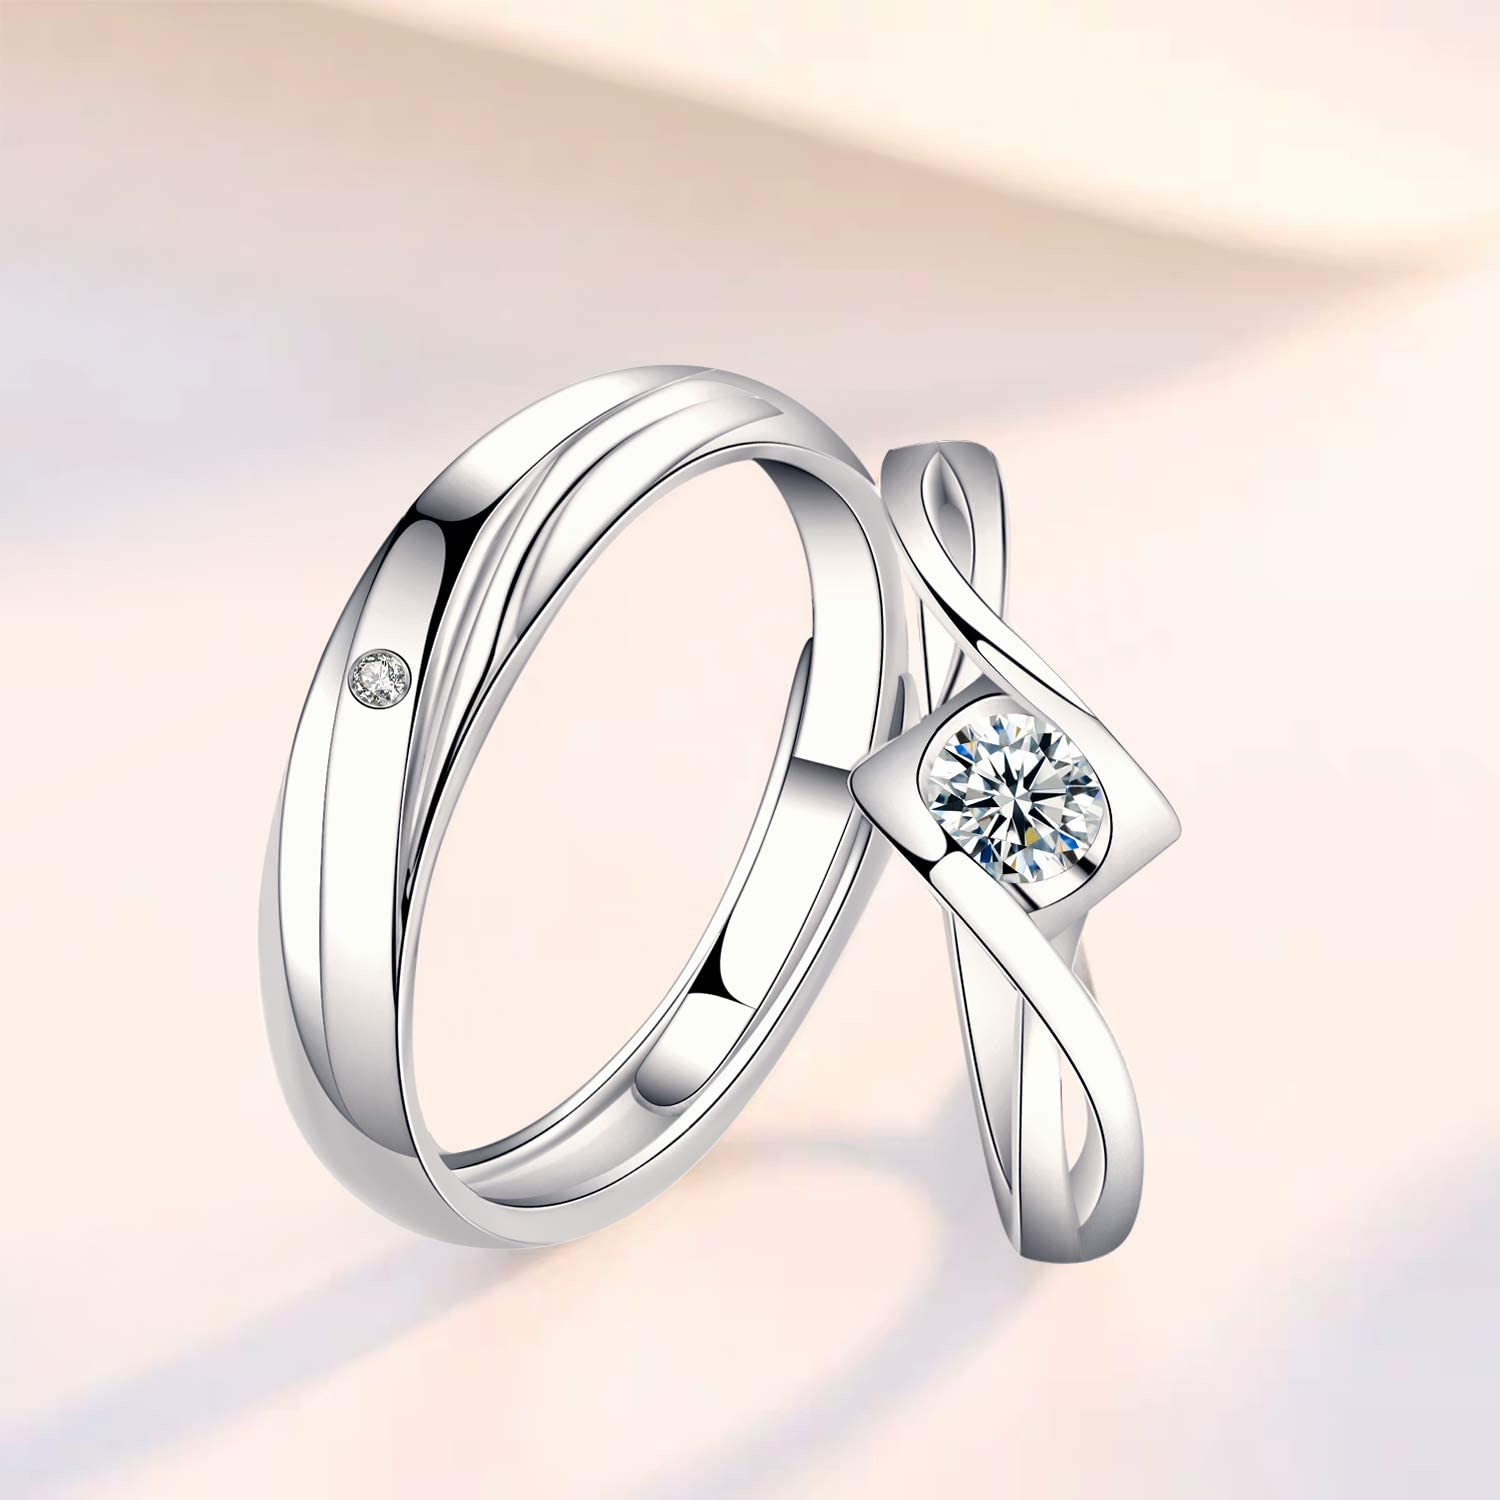 Promise Ring Engagement Ring Anniversary Ring Sunamy Endless Love Matching Couple Rings for Him and Her Set Adjustable 925 Sterling Silver Romantic Heart Design